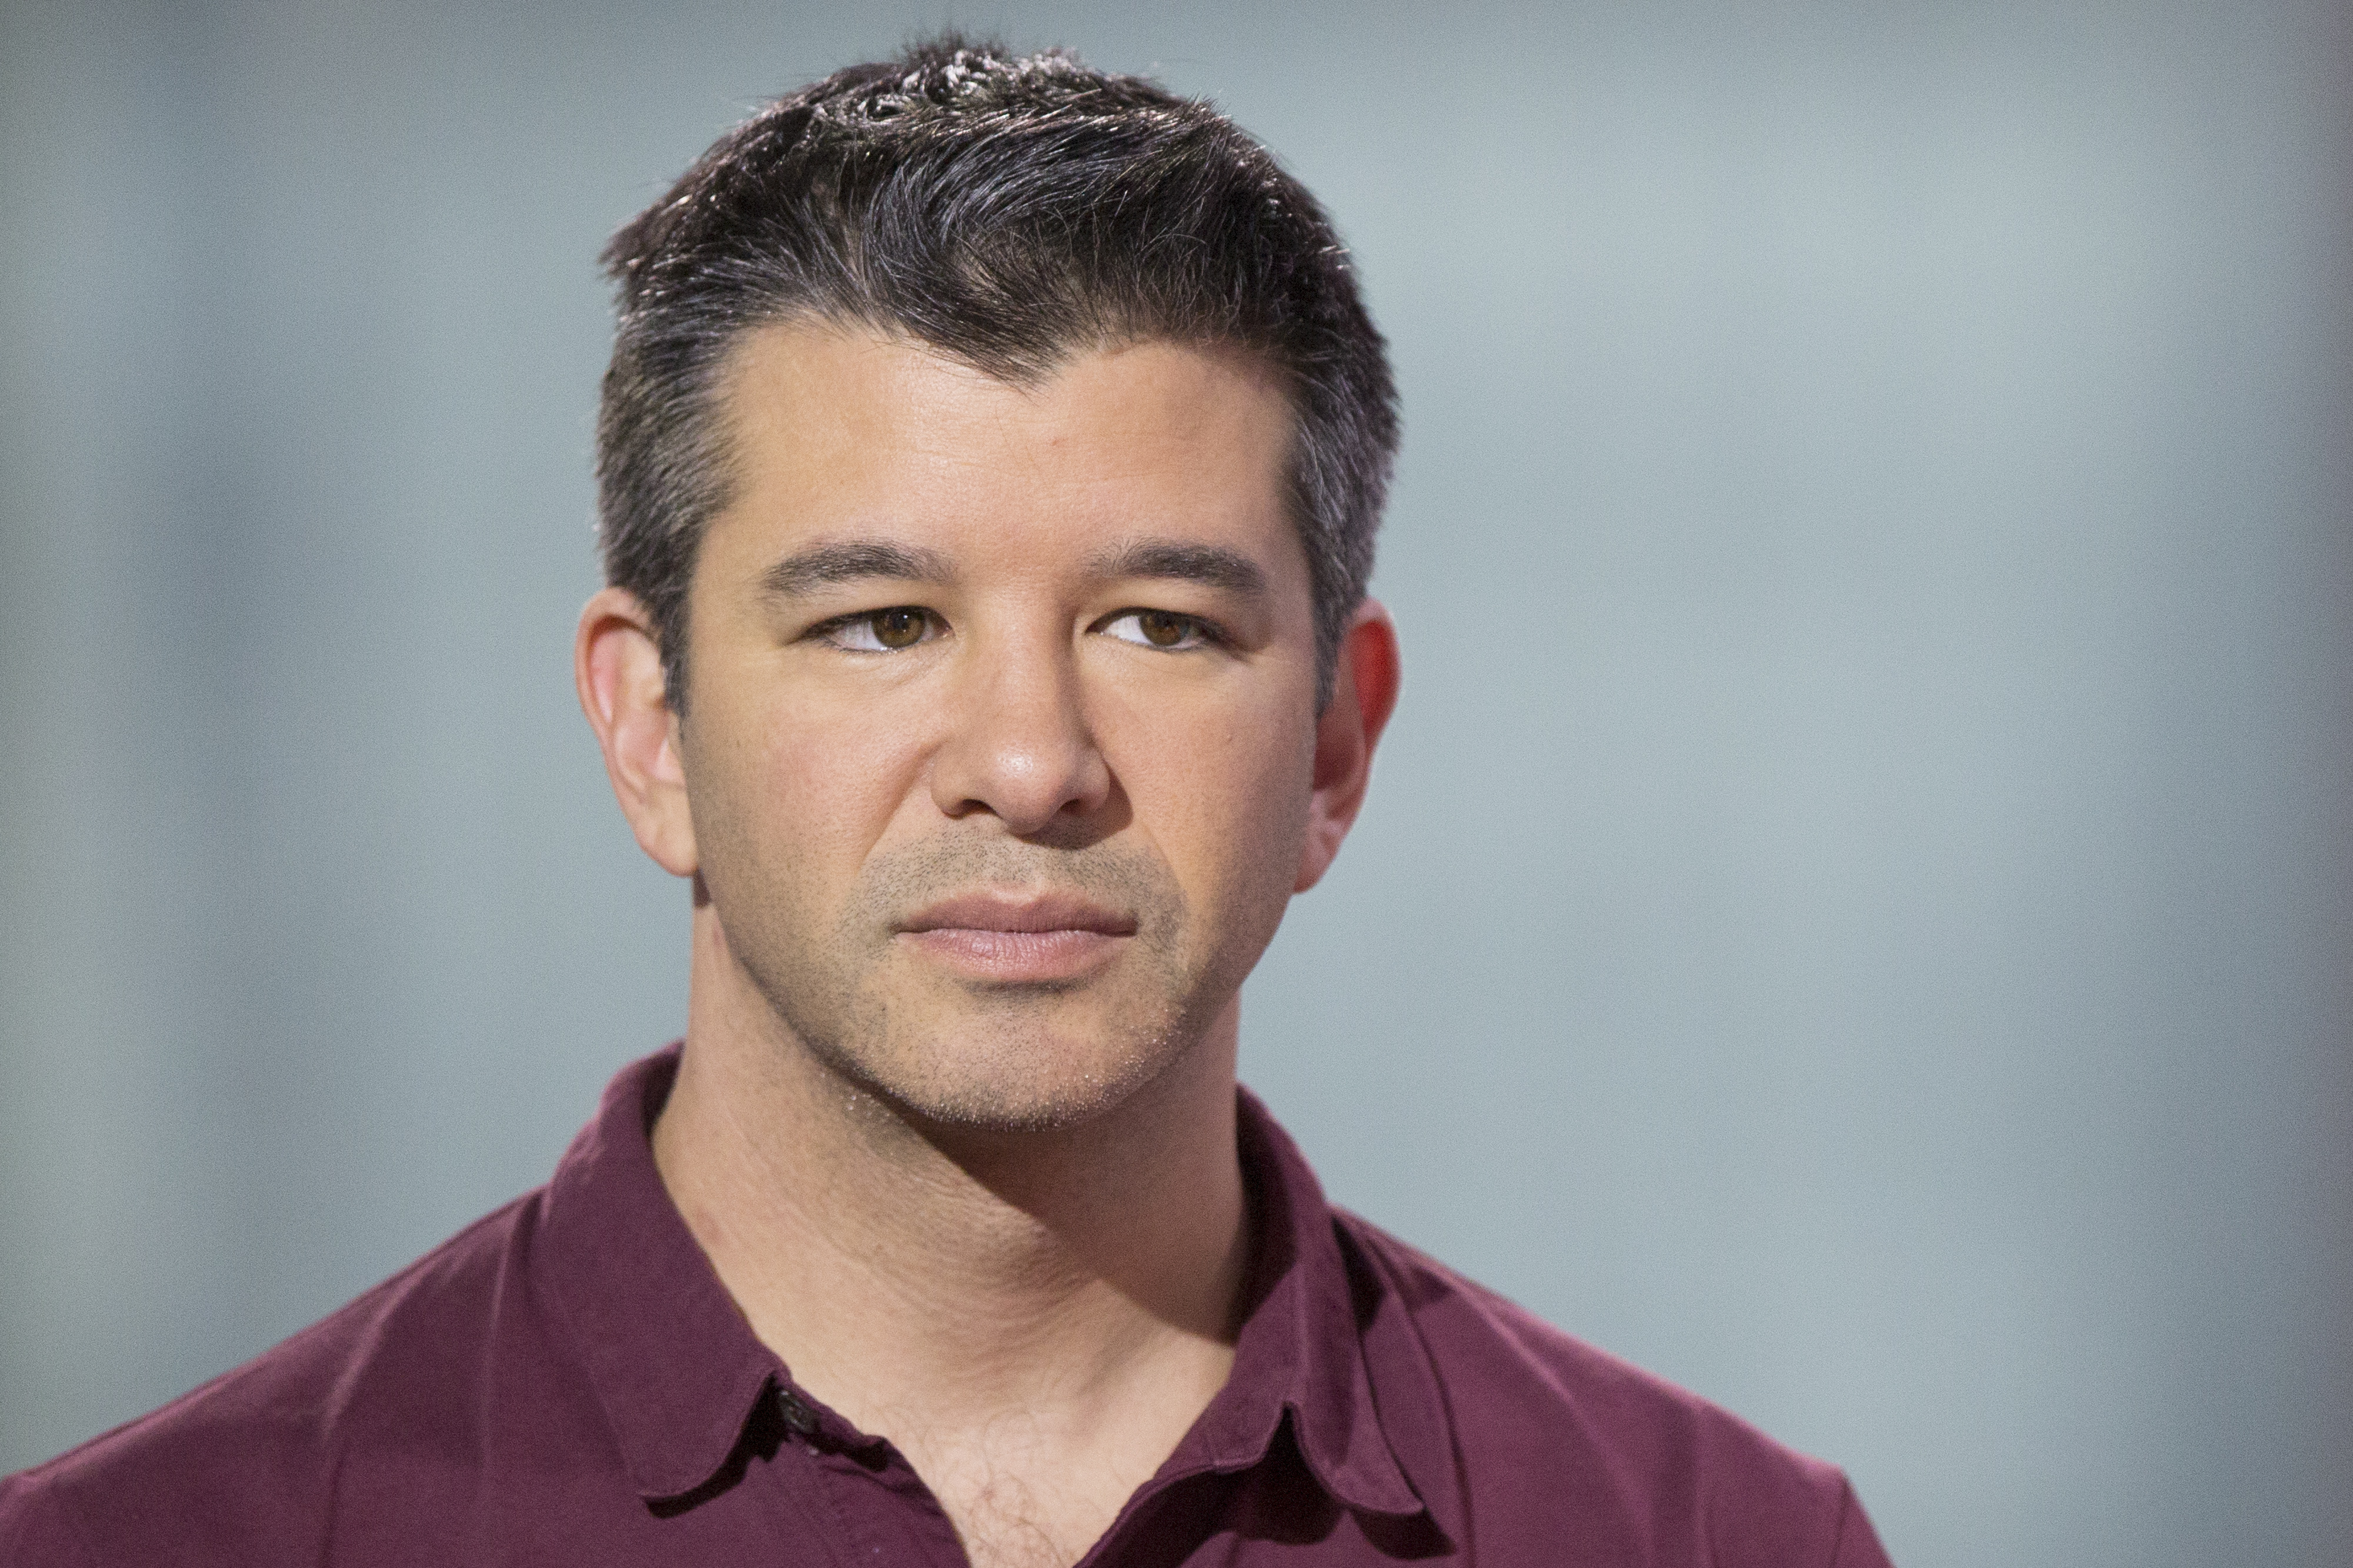 Uber Technologies Inc. Chief Executive Officer Travis Kalanick Interview